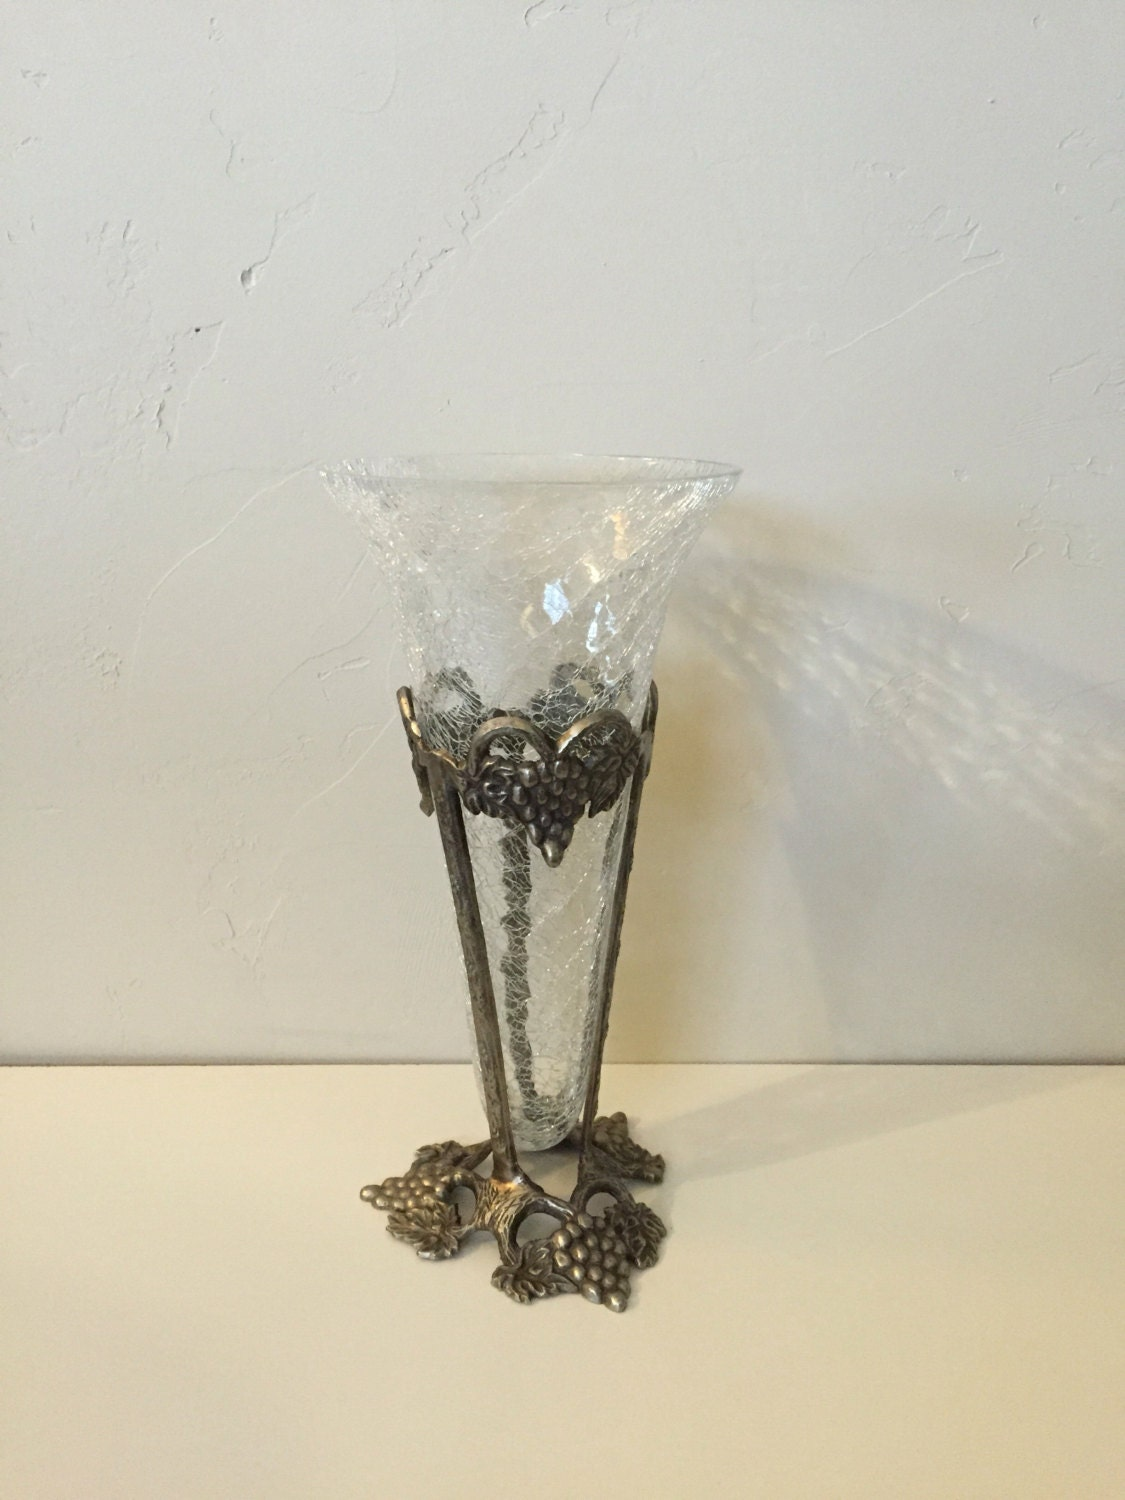 Gatco Brass, Made in India: Tall Crackle Glass Cone Vase